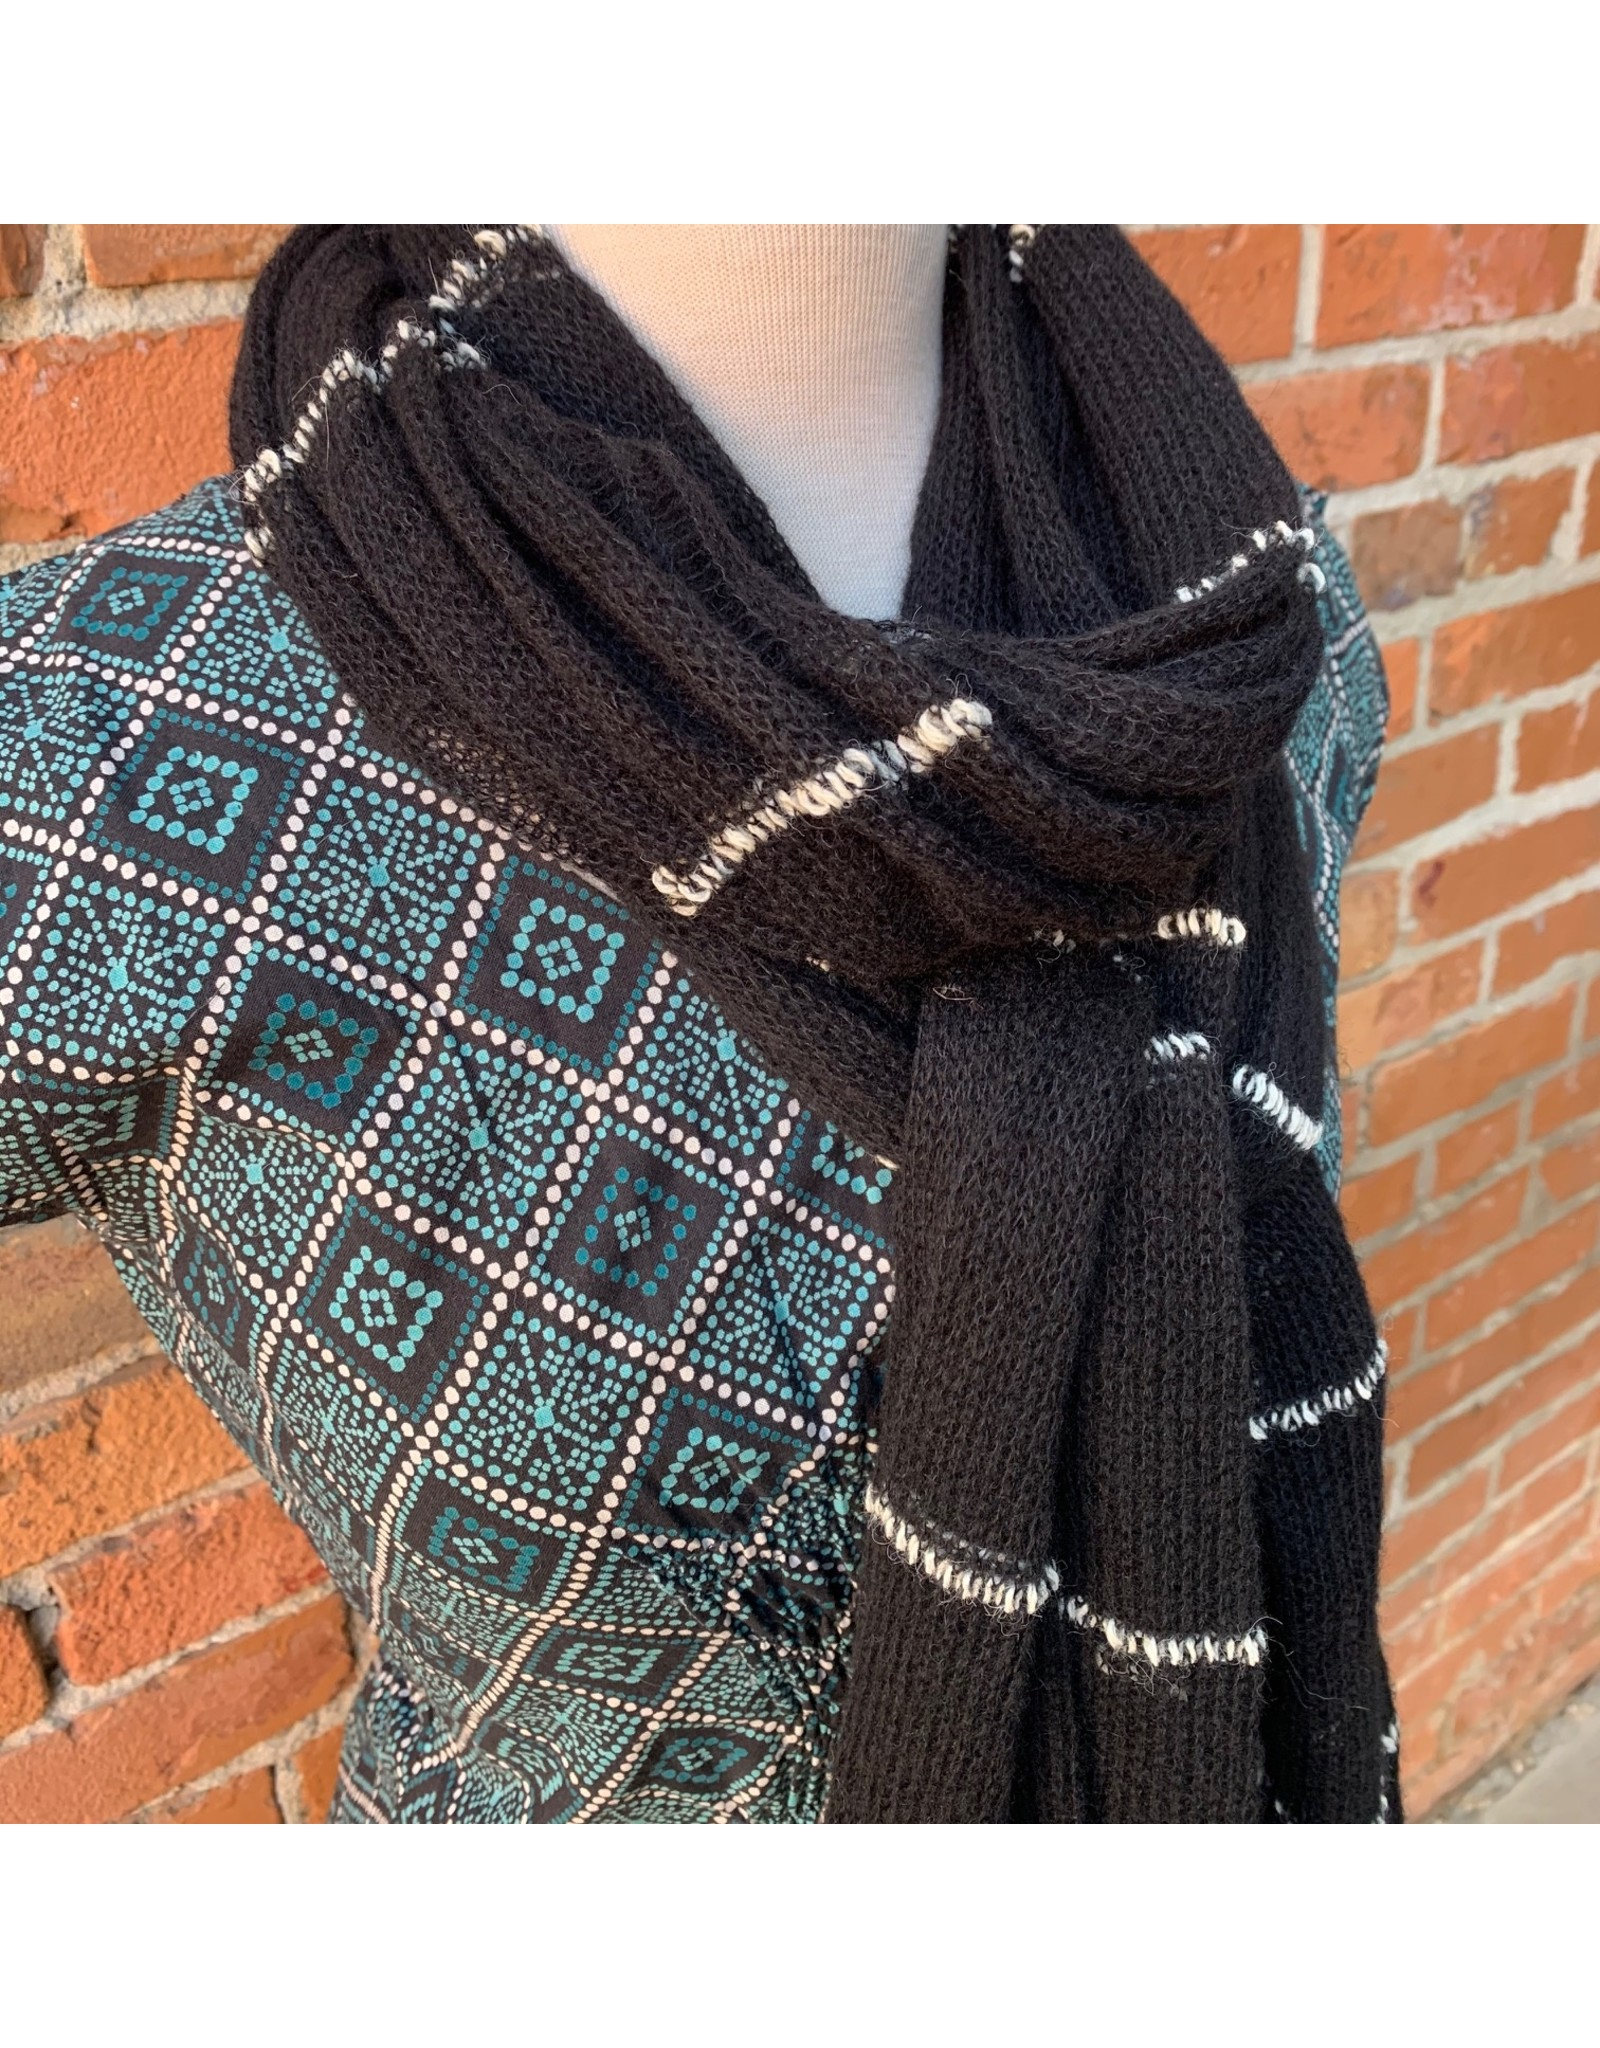 Ten Thousand Villages CLEARANCE White Striped Black Scarf